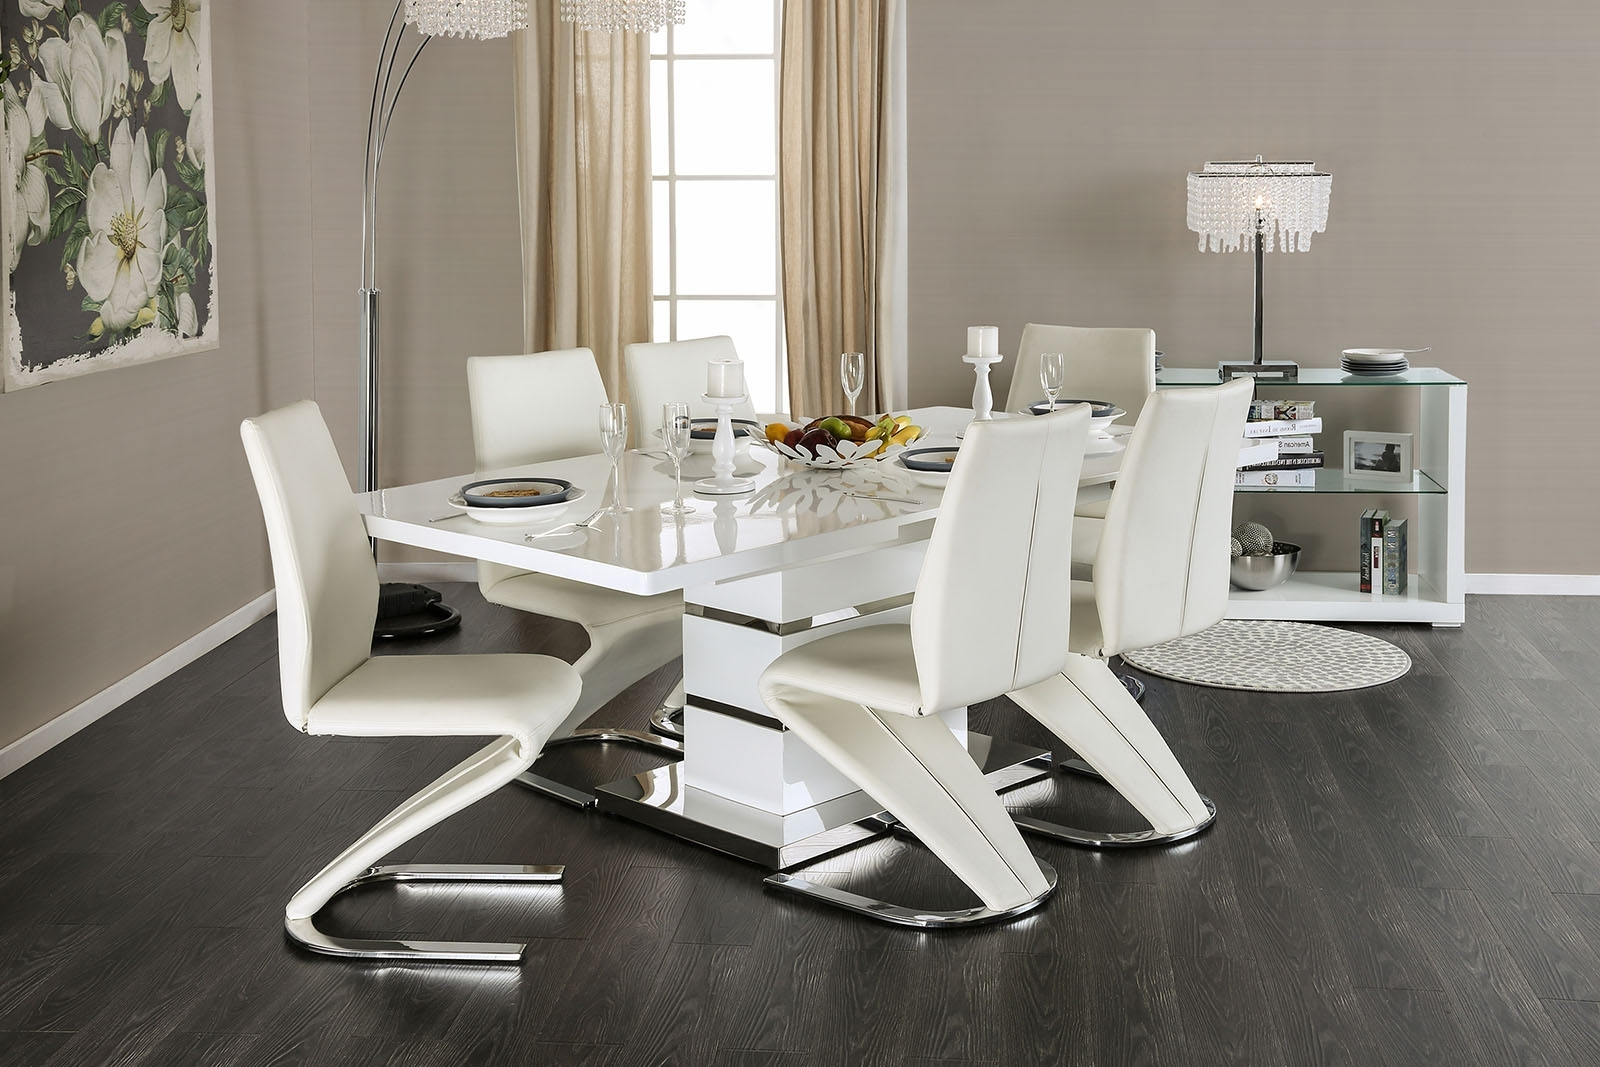 Most Current Midvale Contemporary Style White High Gloss Lacquer Finish & Chrome With Regard To Chrome Dining Tables And Chairs (View 8 of 25)